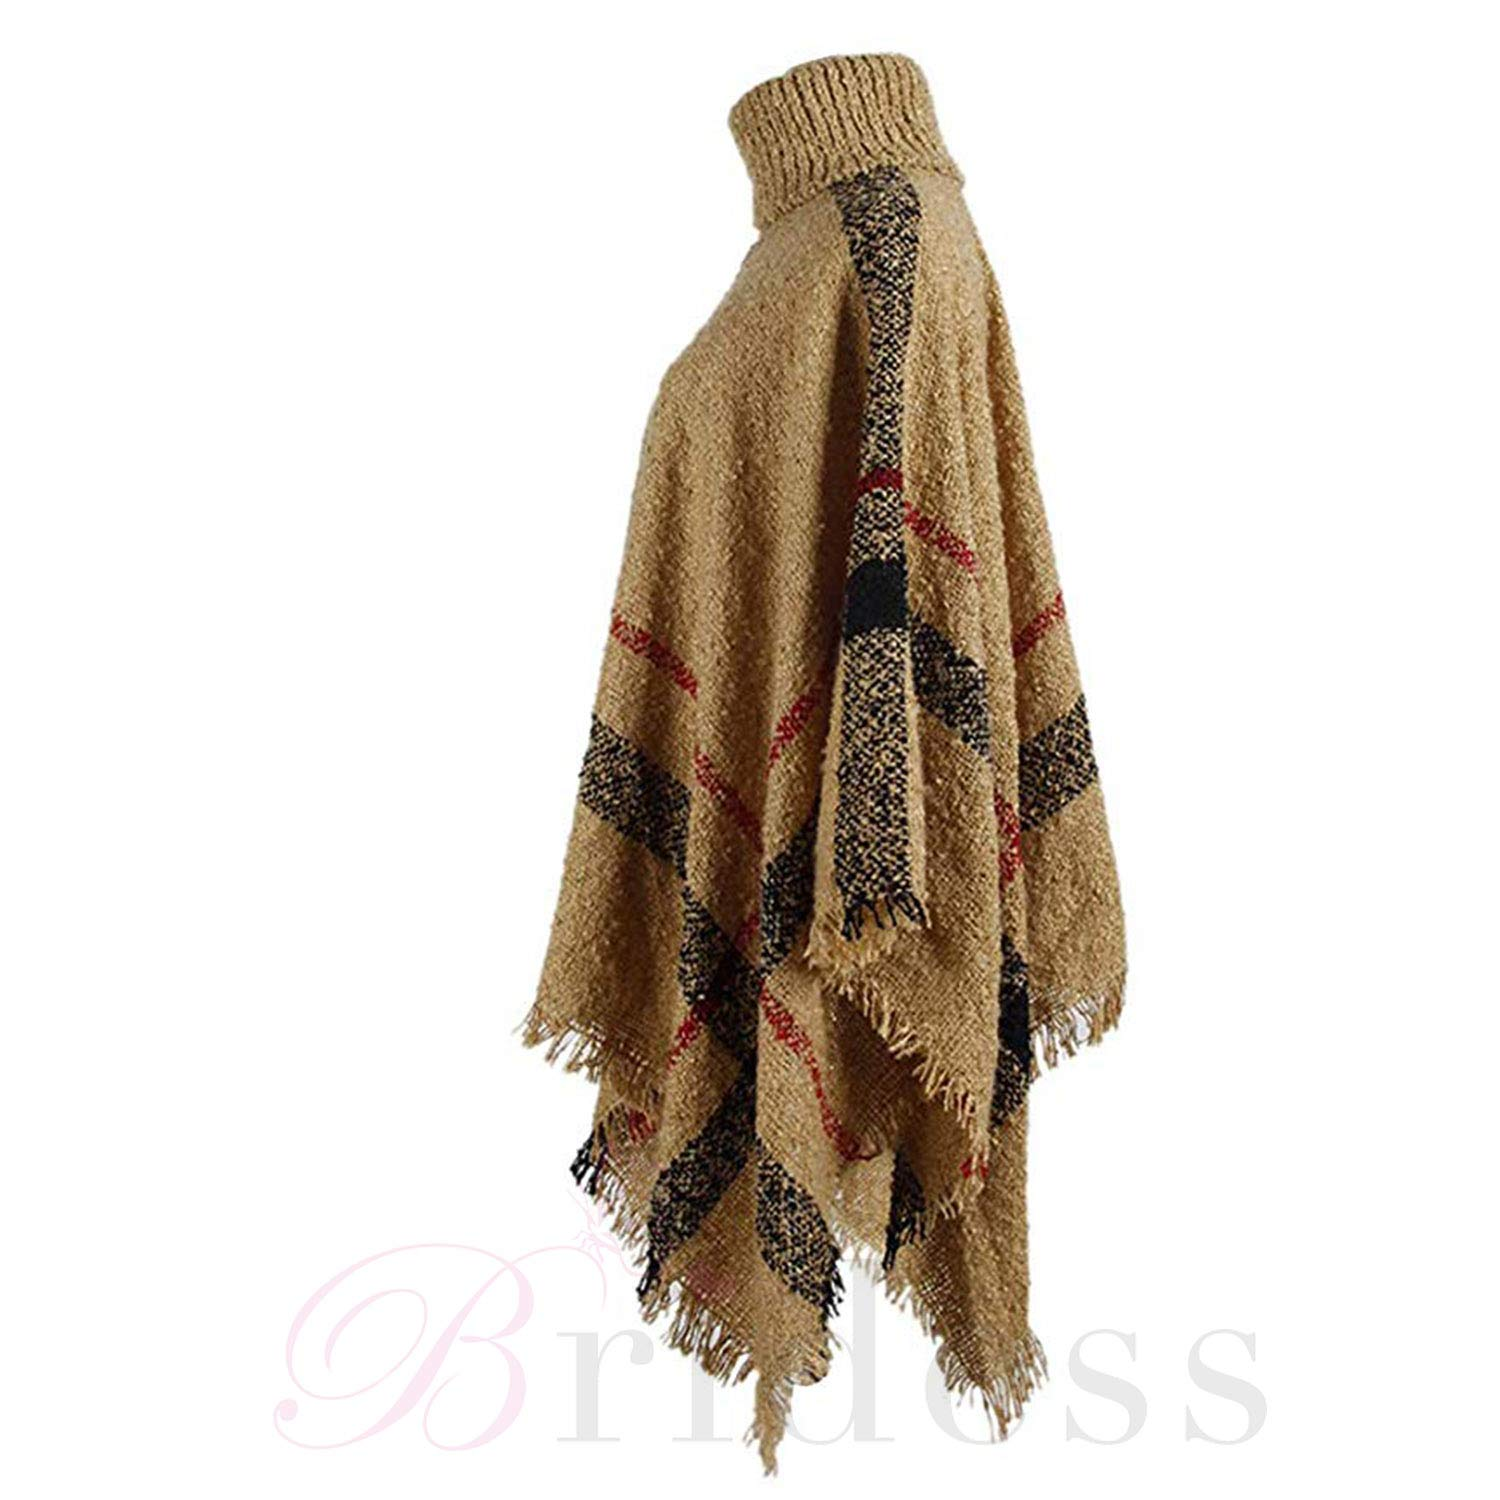 Bridess Womens Winter Sweater Knitted Tassel Poncho Batwing Plaid Pullover Shawl Cloak